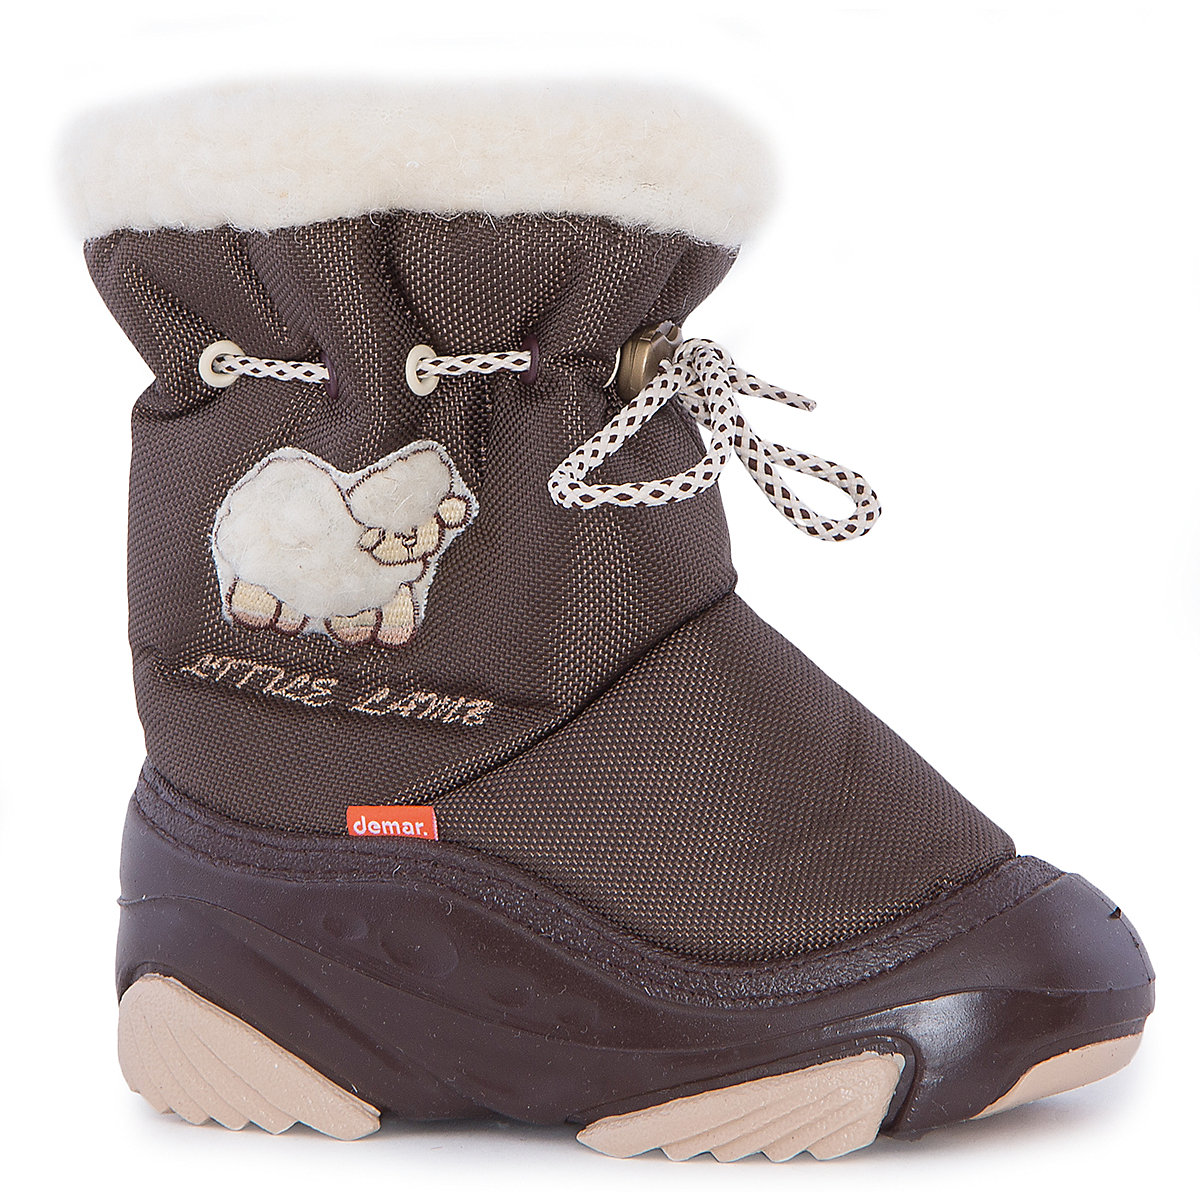 Boots Demar for boys and girls 6835035 Valenki Uggi Winter Baby Kids Children shoes boots demar for boys and girls 6835179 valenki uggi winter baby kids children shoes